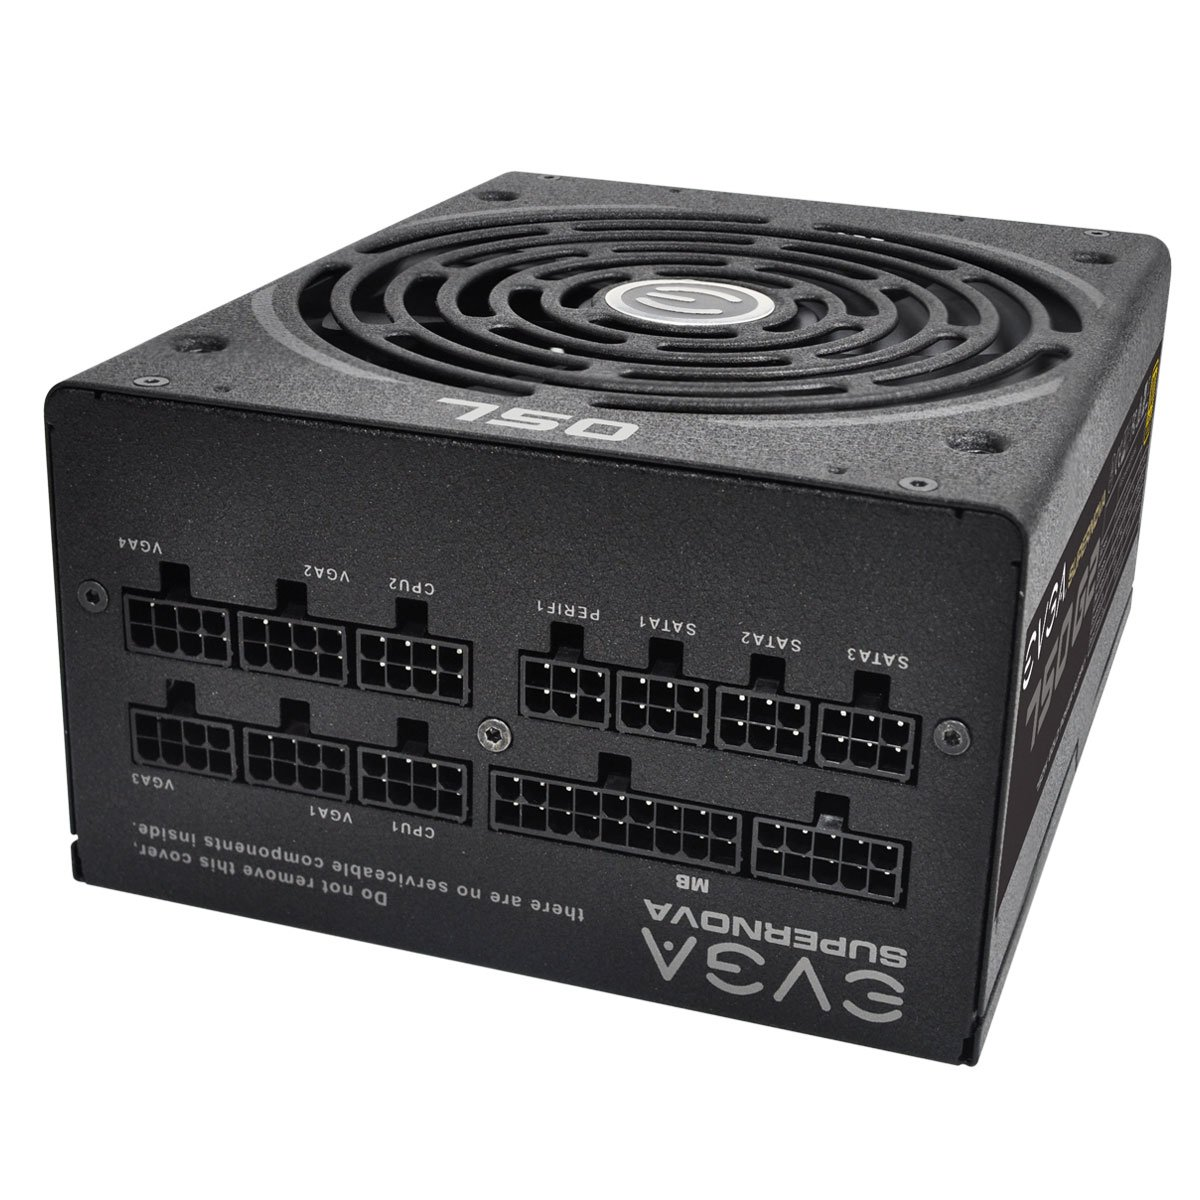 EVGA SuperNOVA 750 G2, 80+ GOLD 750W, Fully Modular, EVGA ECO Mode, 10 Year Warranty, Includes FREE Power On Self Tester Power Supply 220-G2-0750-XR by EVGA (Image #2)